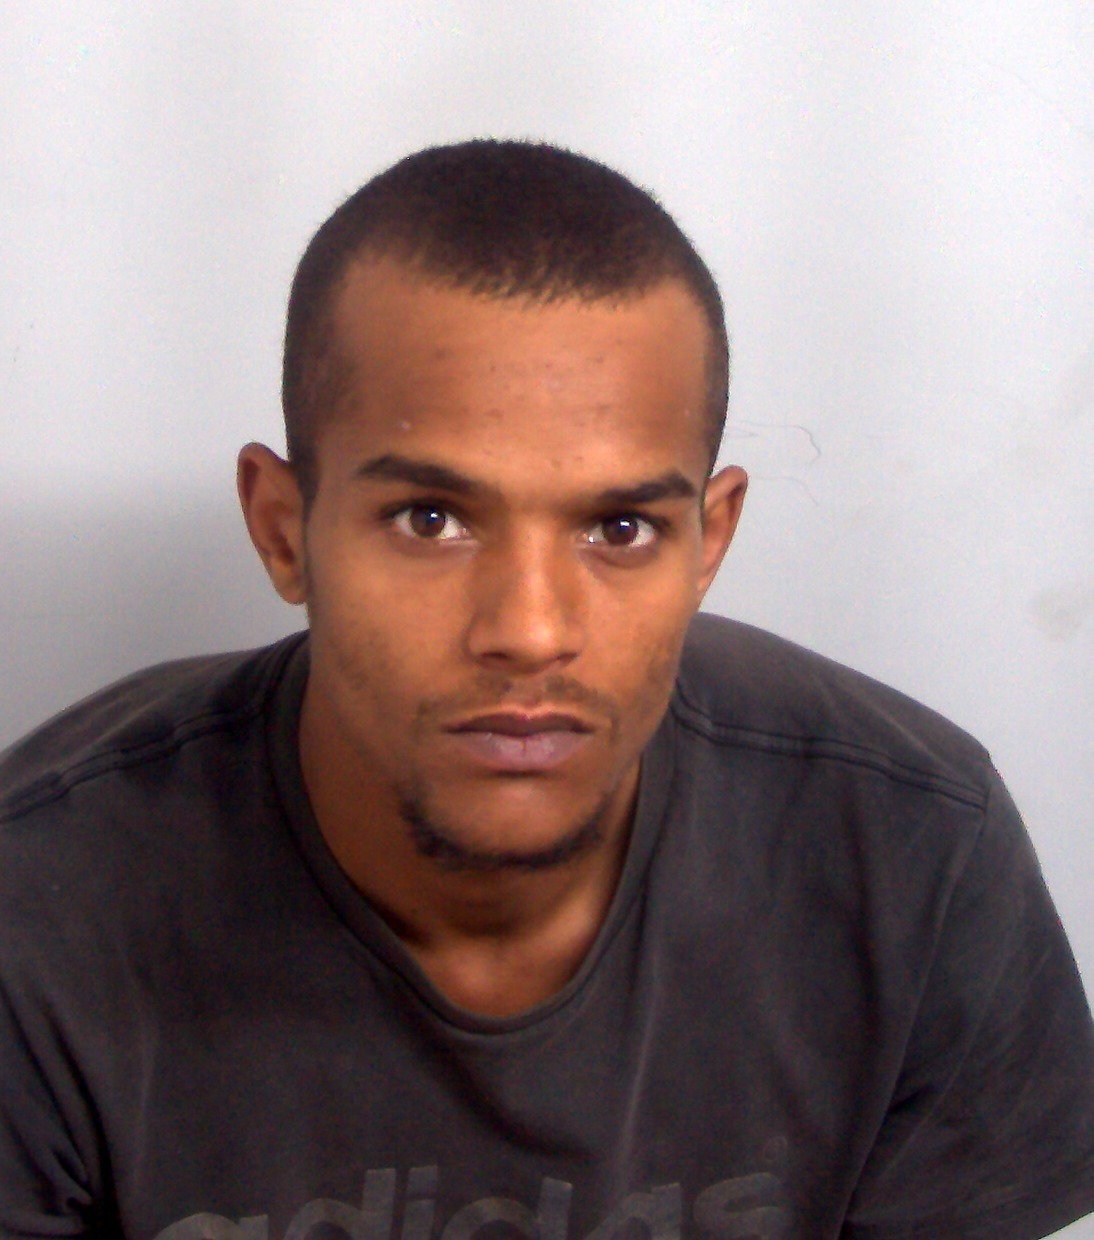 Waltham Abbey man wanted for questioning over GBH - Epping Forest Guardian